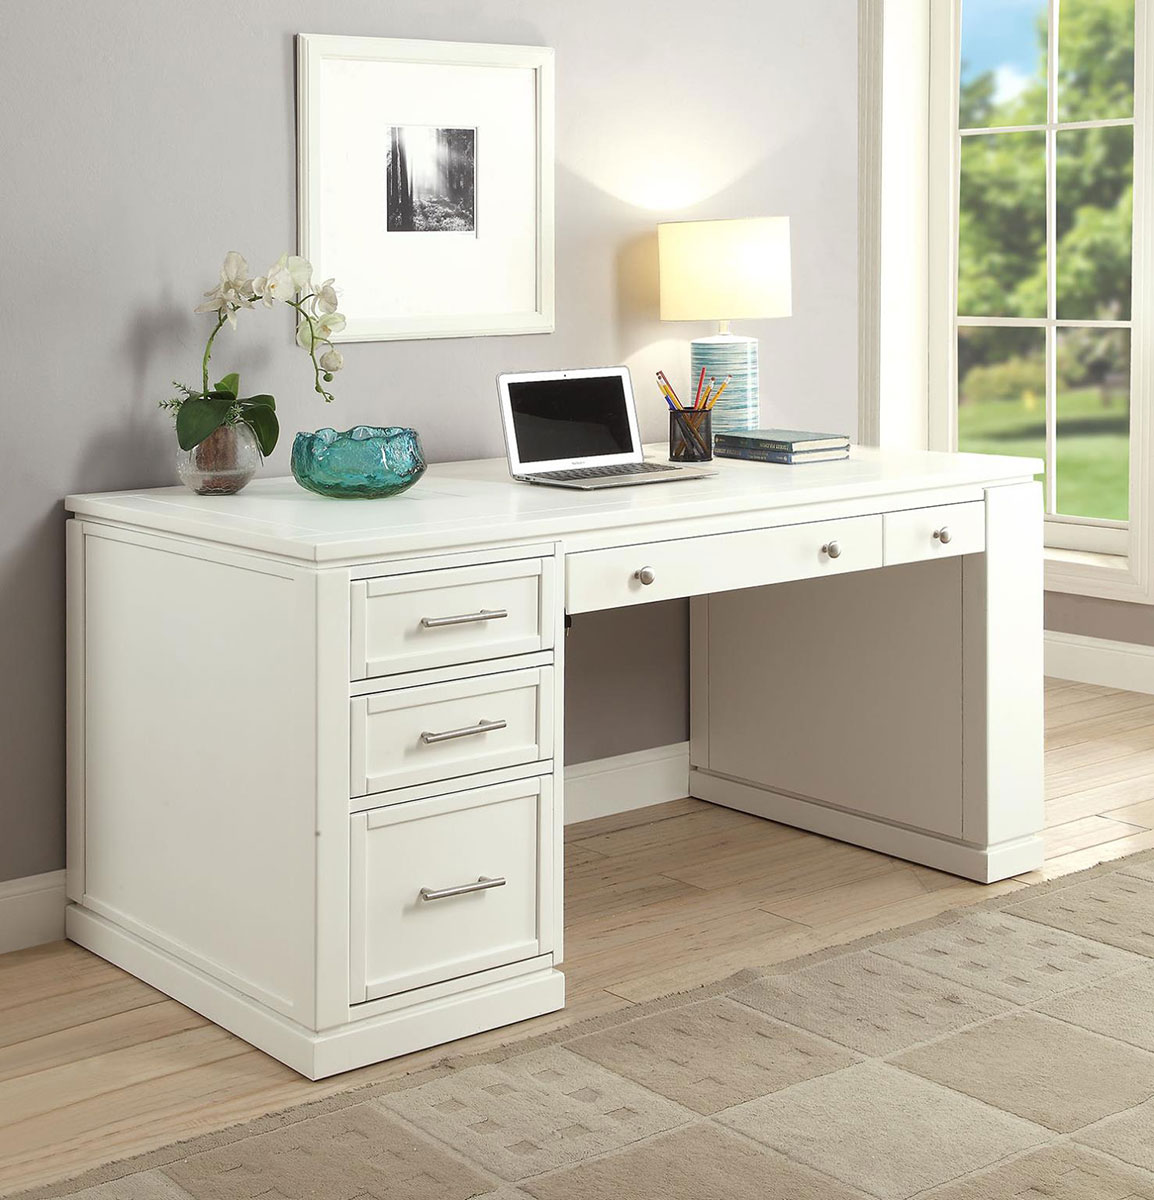 Parker house catalina 60 inch writing desk with power center and usb